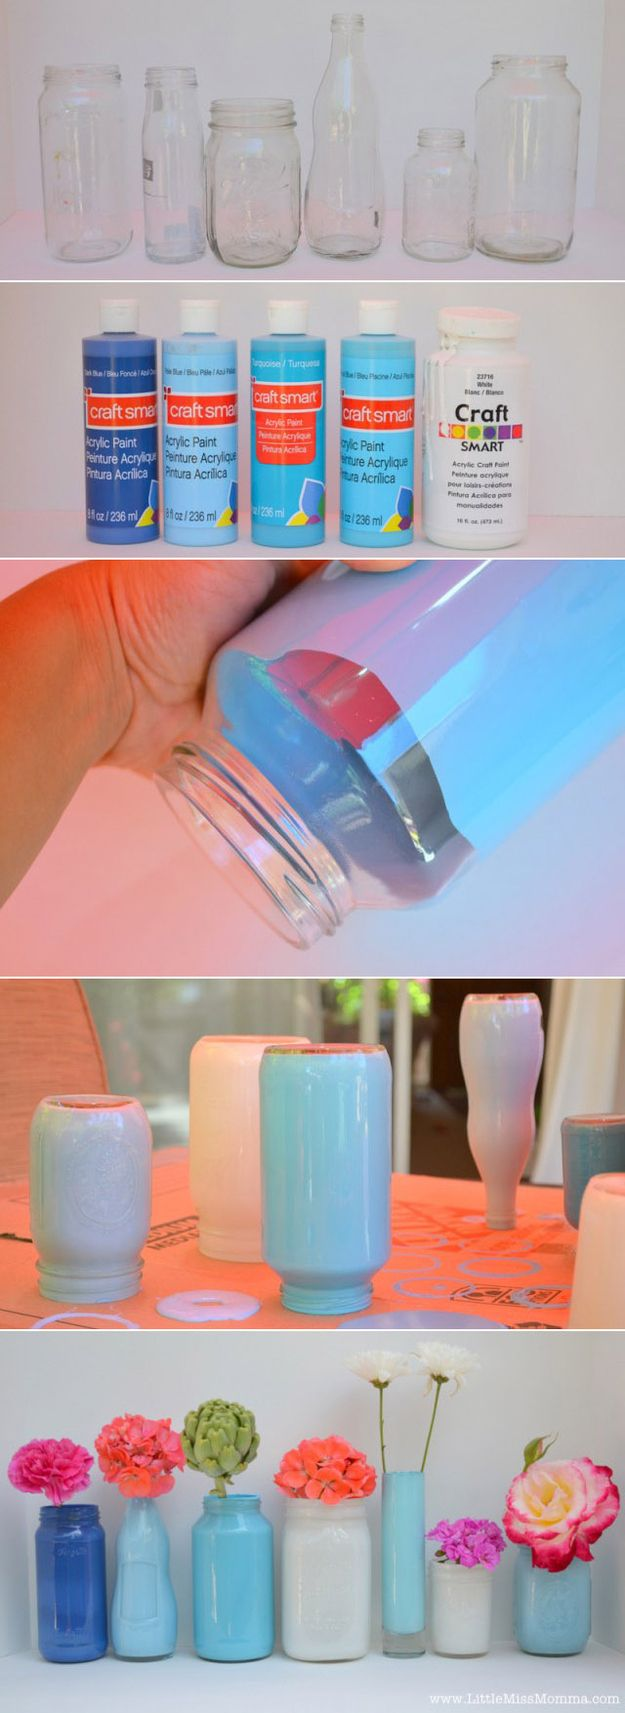 41 ideas for jars